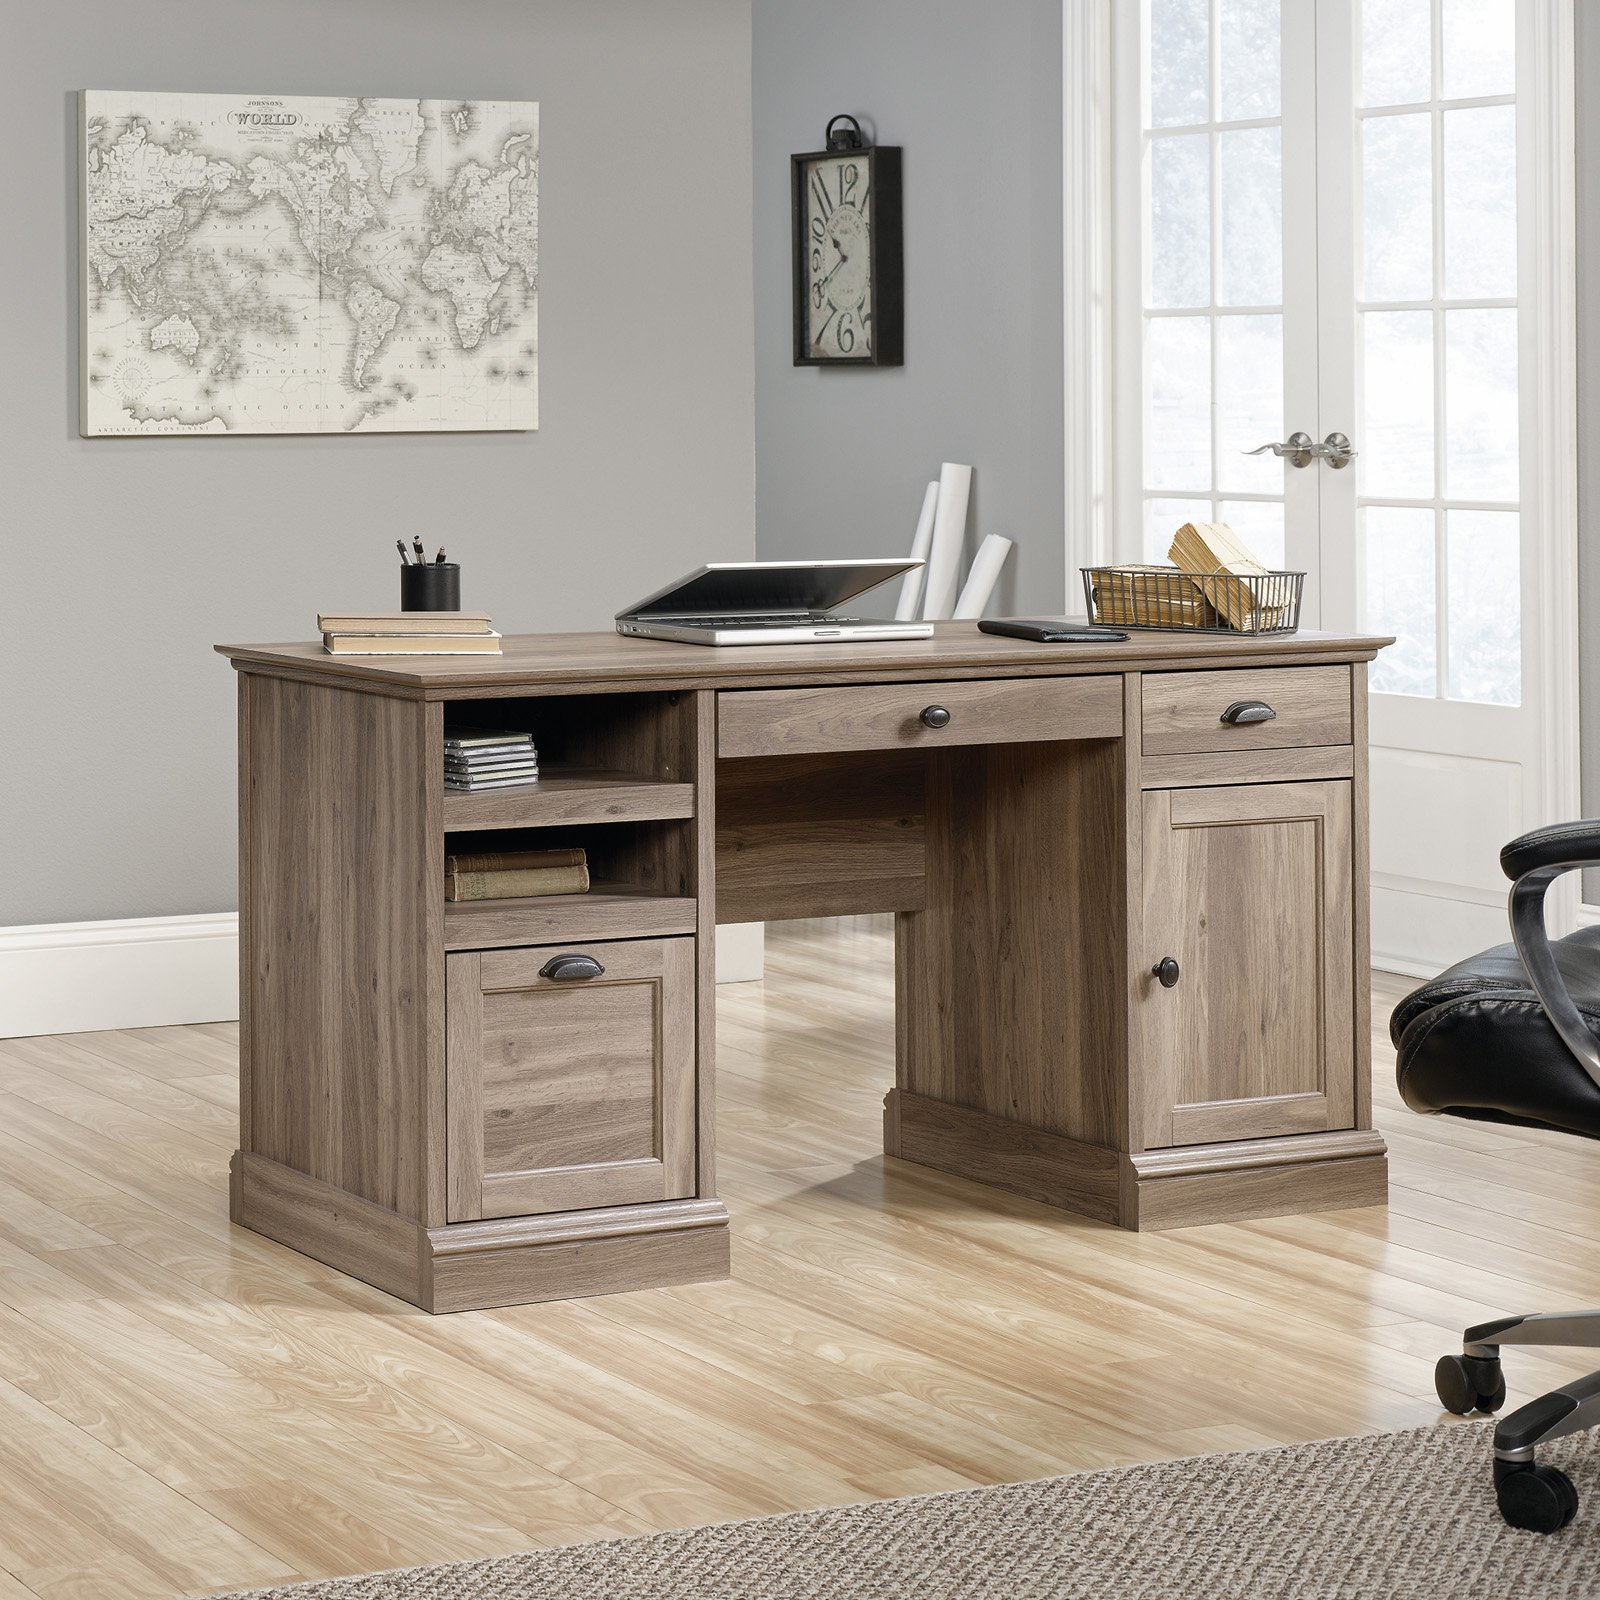 Sauder Barrister Lane Executive Desk by Sauder